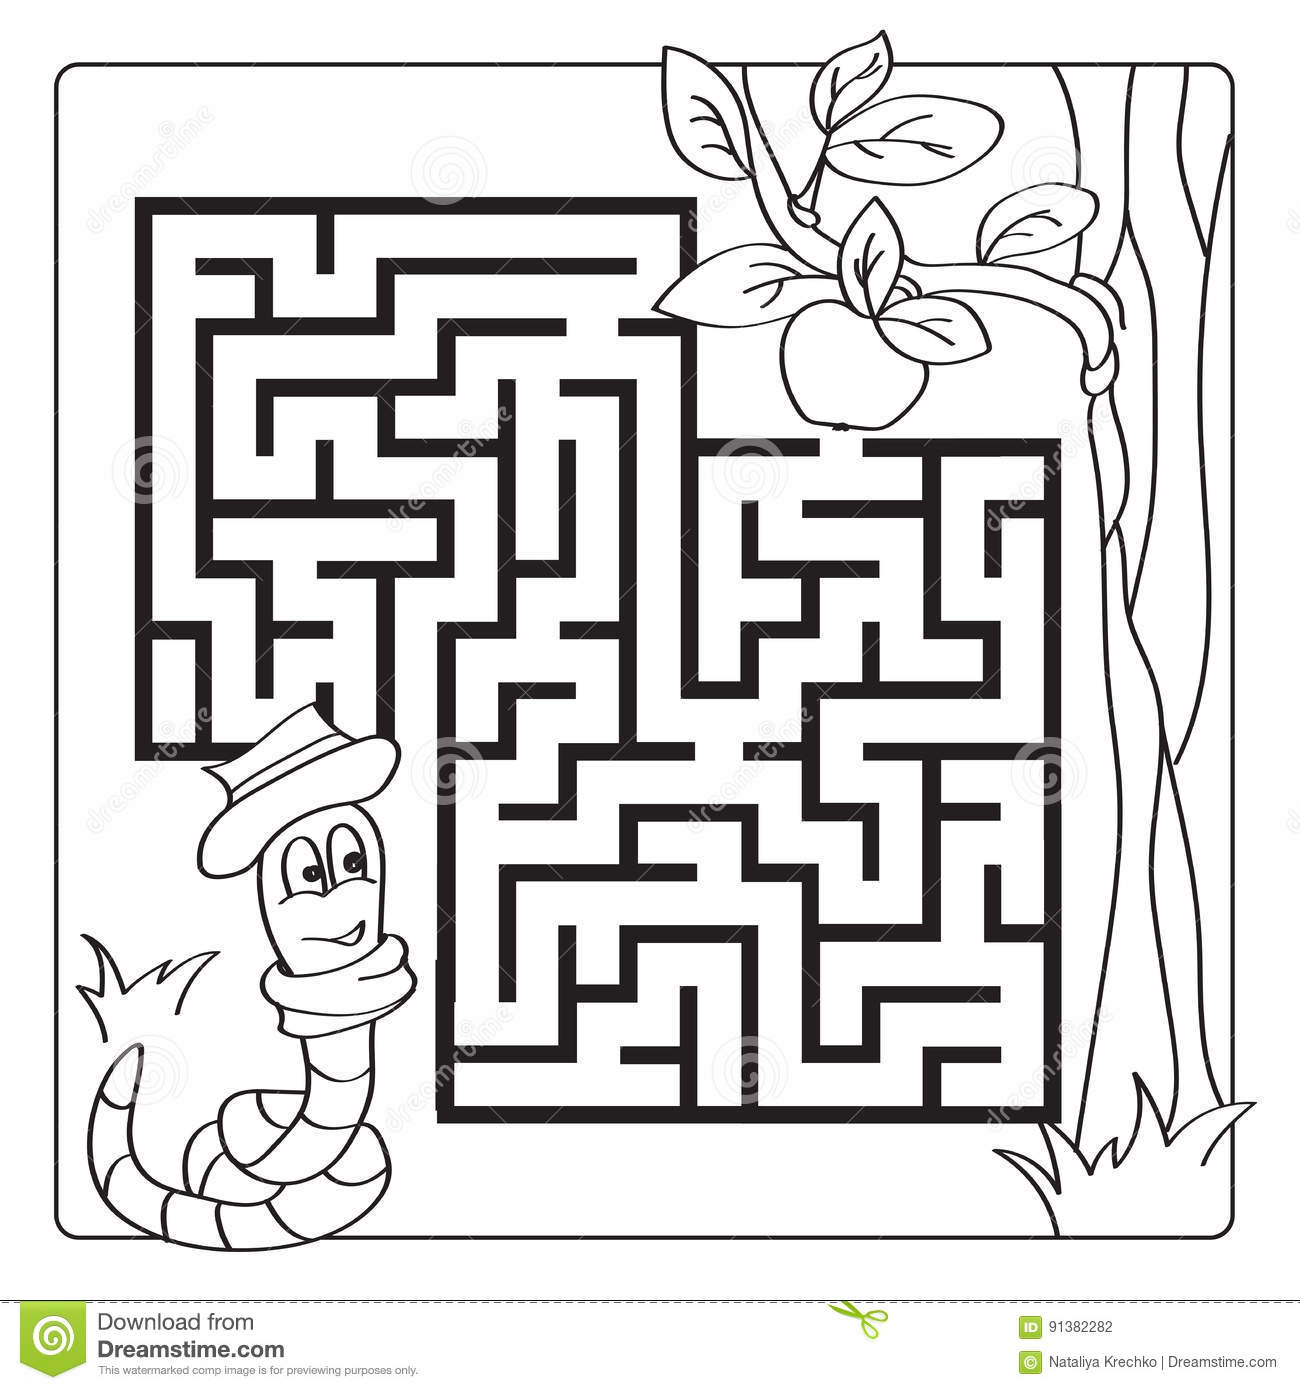 Mystery Puzzle Coloring Pix Coloring Pages